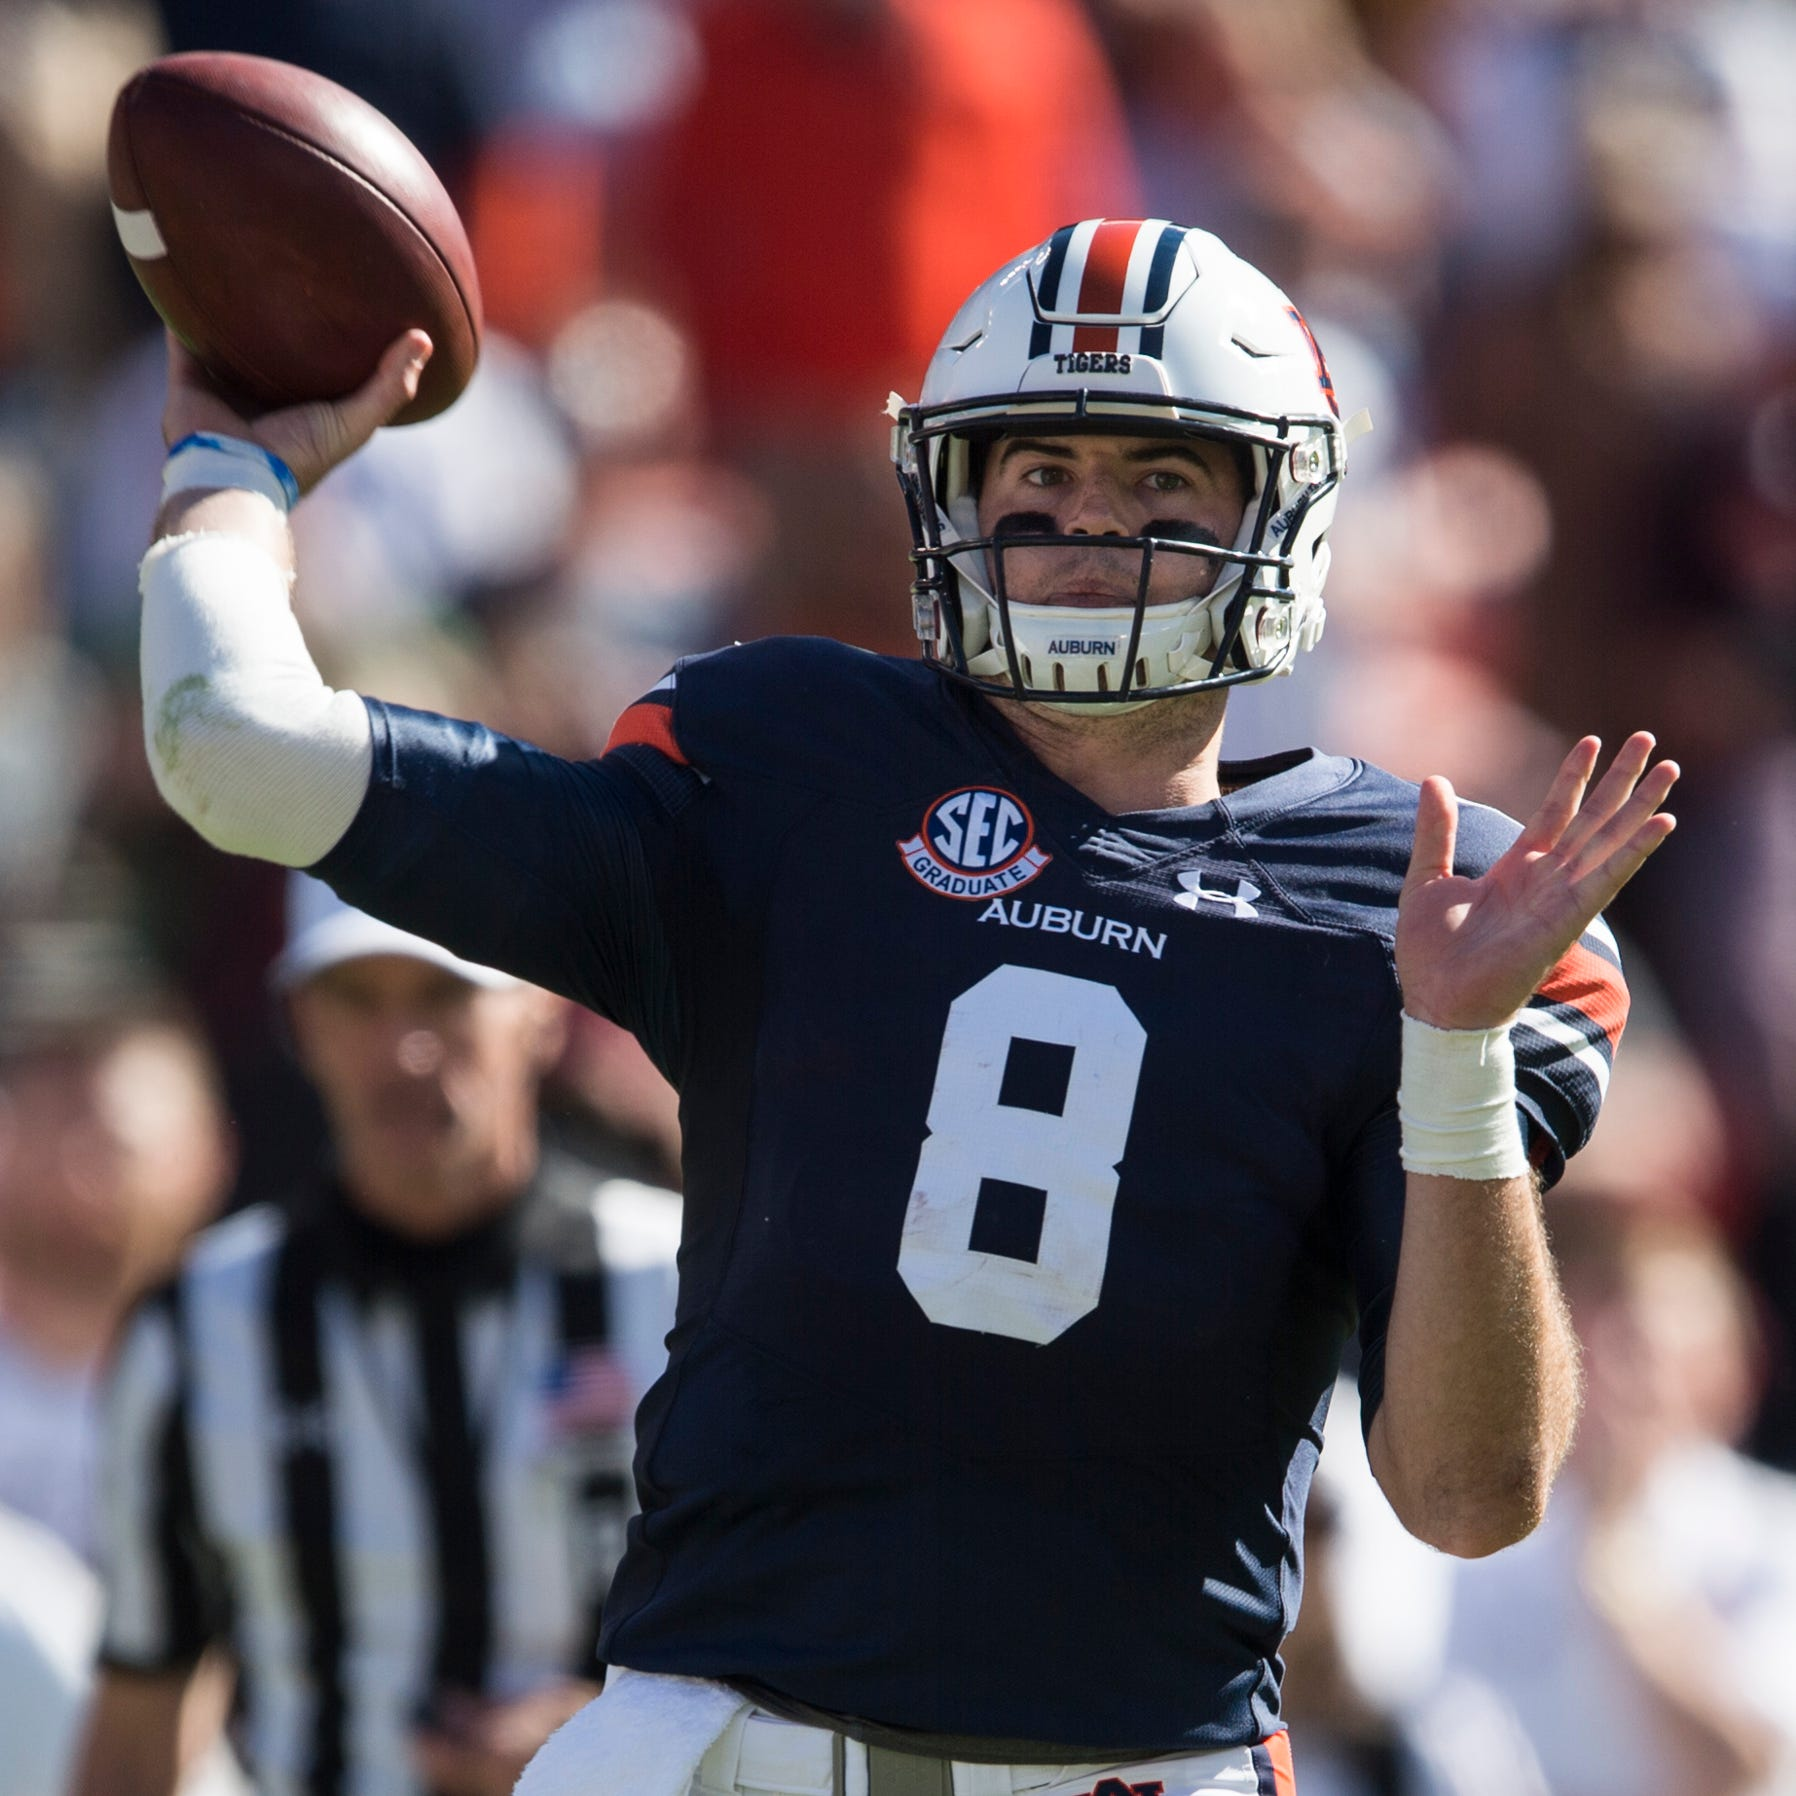 NFL Draft 2019: New England Patriots select Auburn QB Jarrett Stidham to help back up Tom Brady